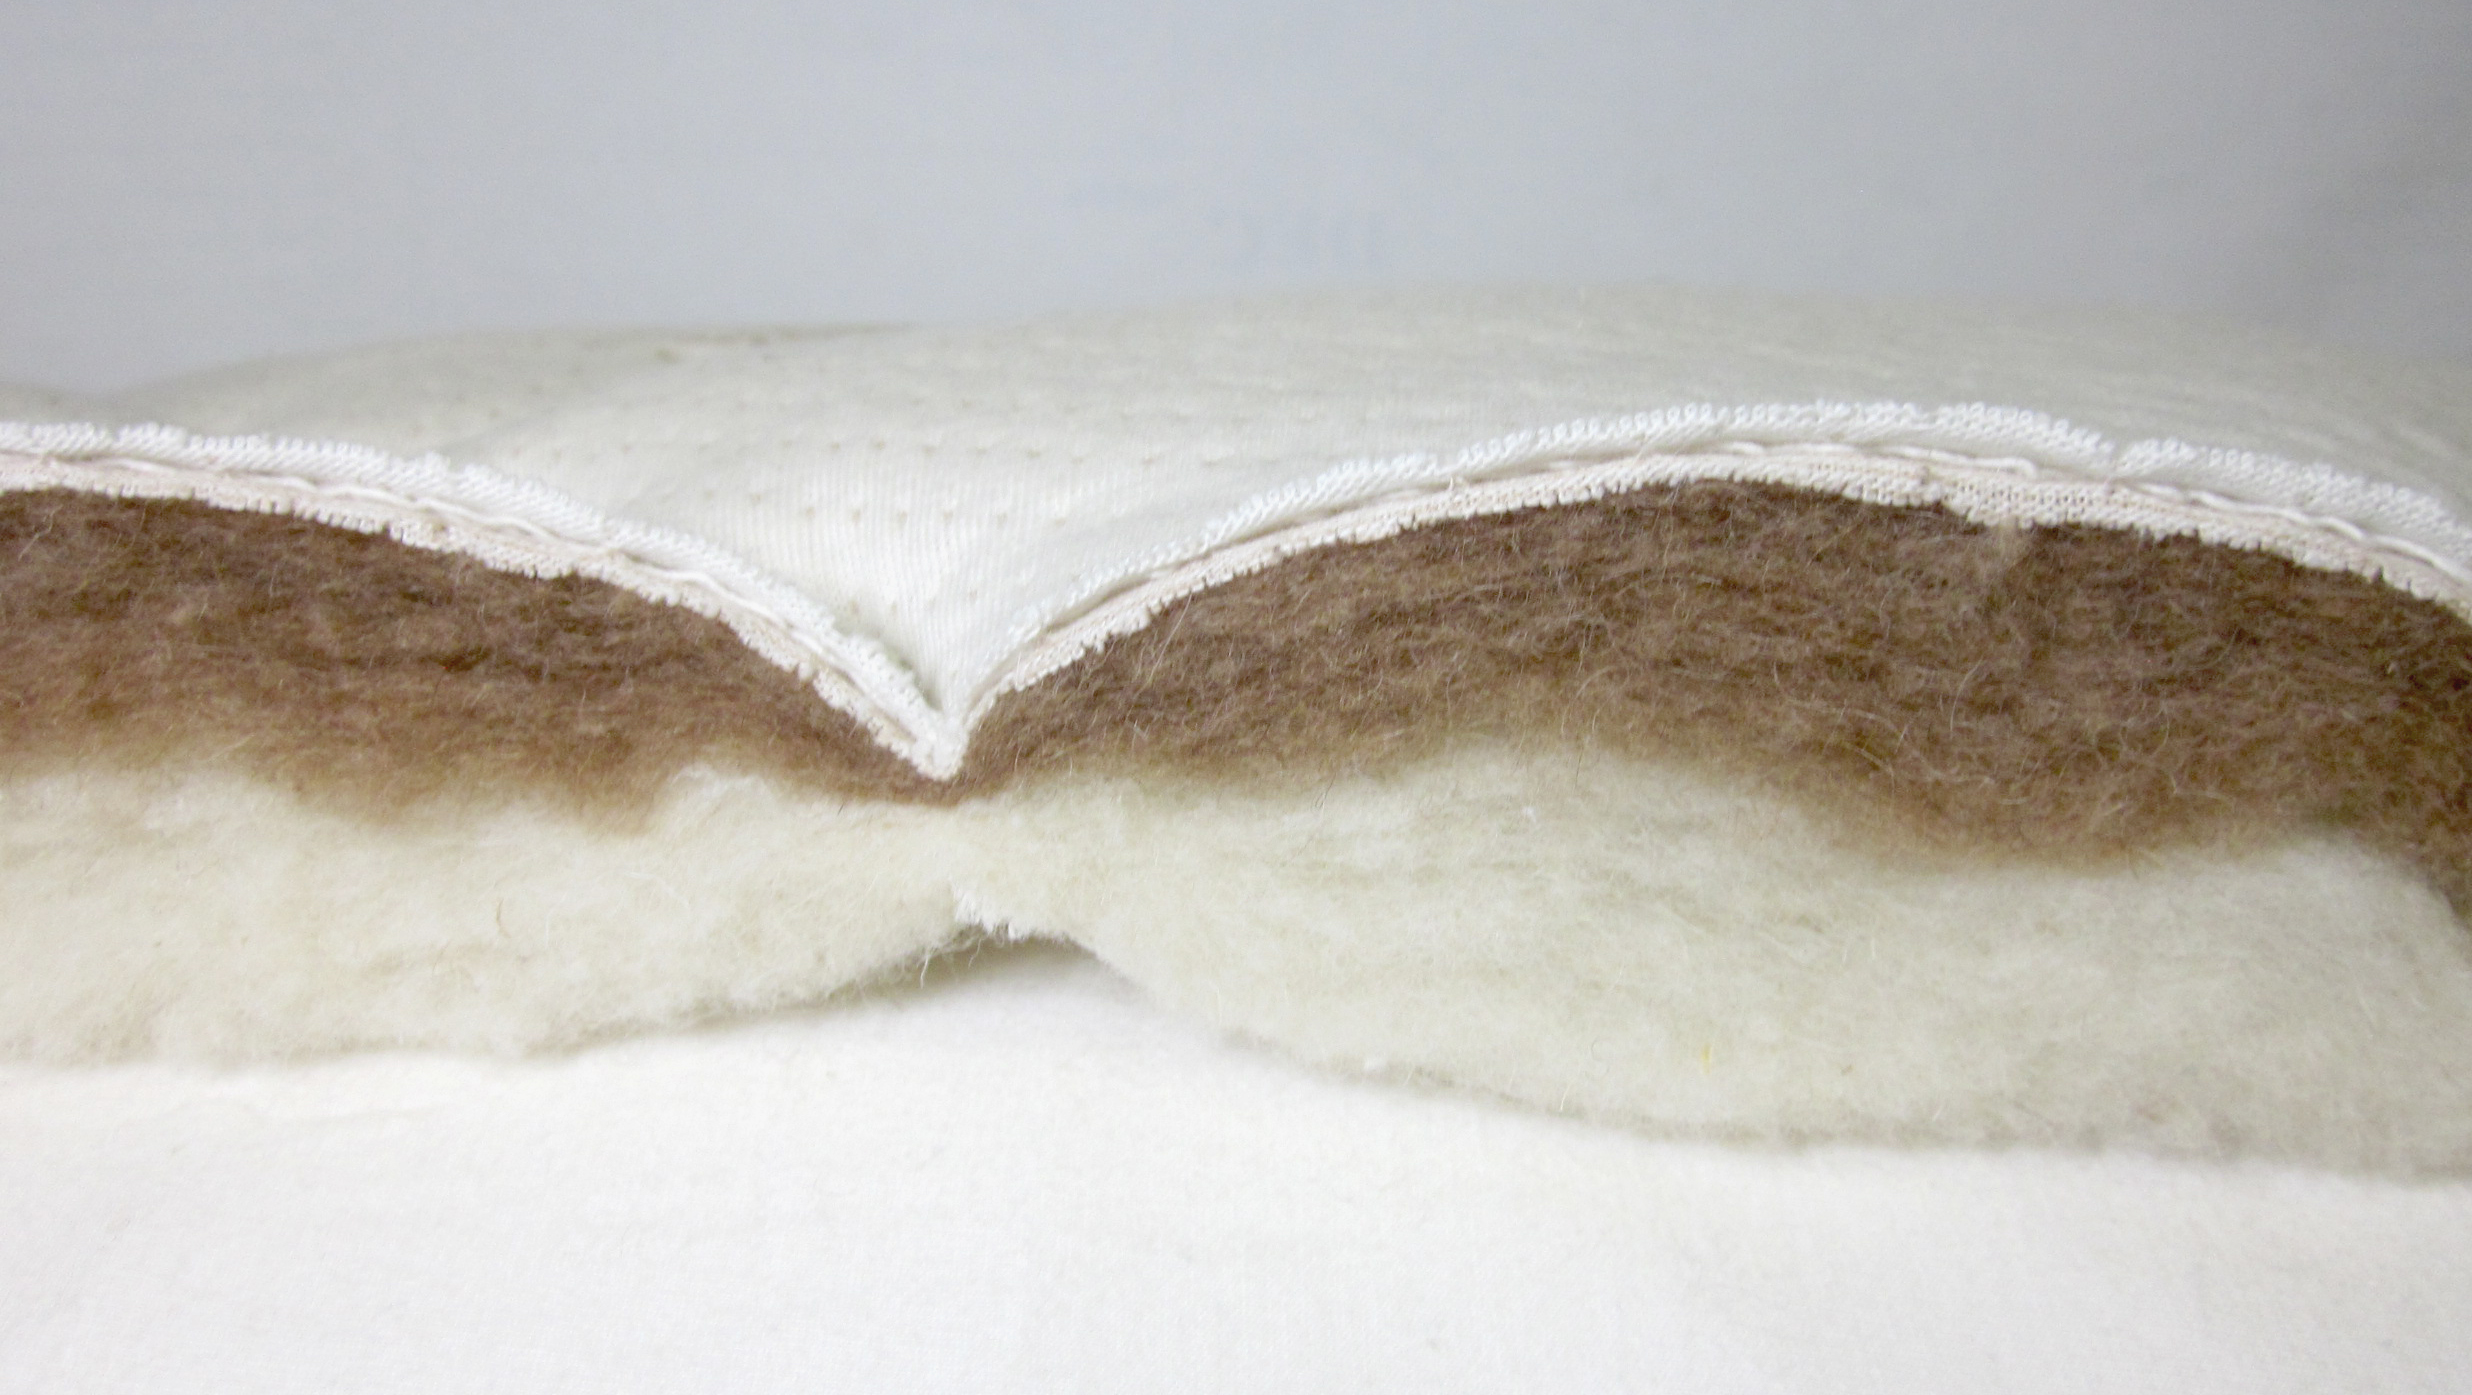 Pure camel hair combined with Merino wool for an optimal sleep climate